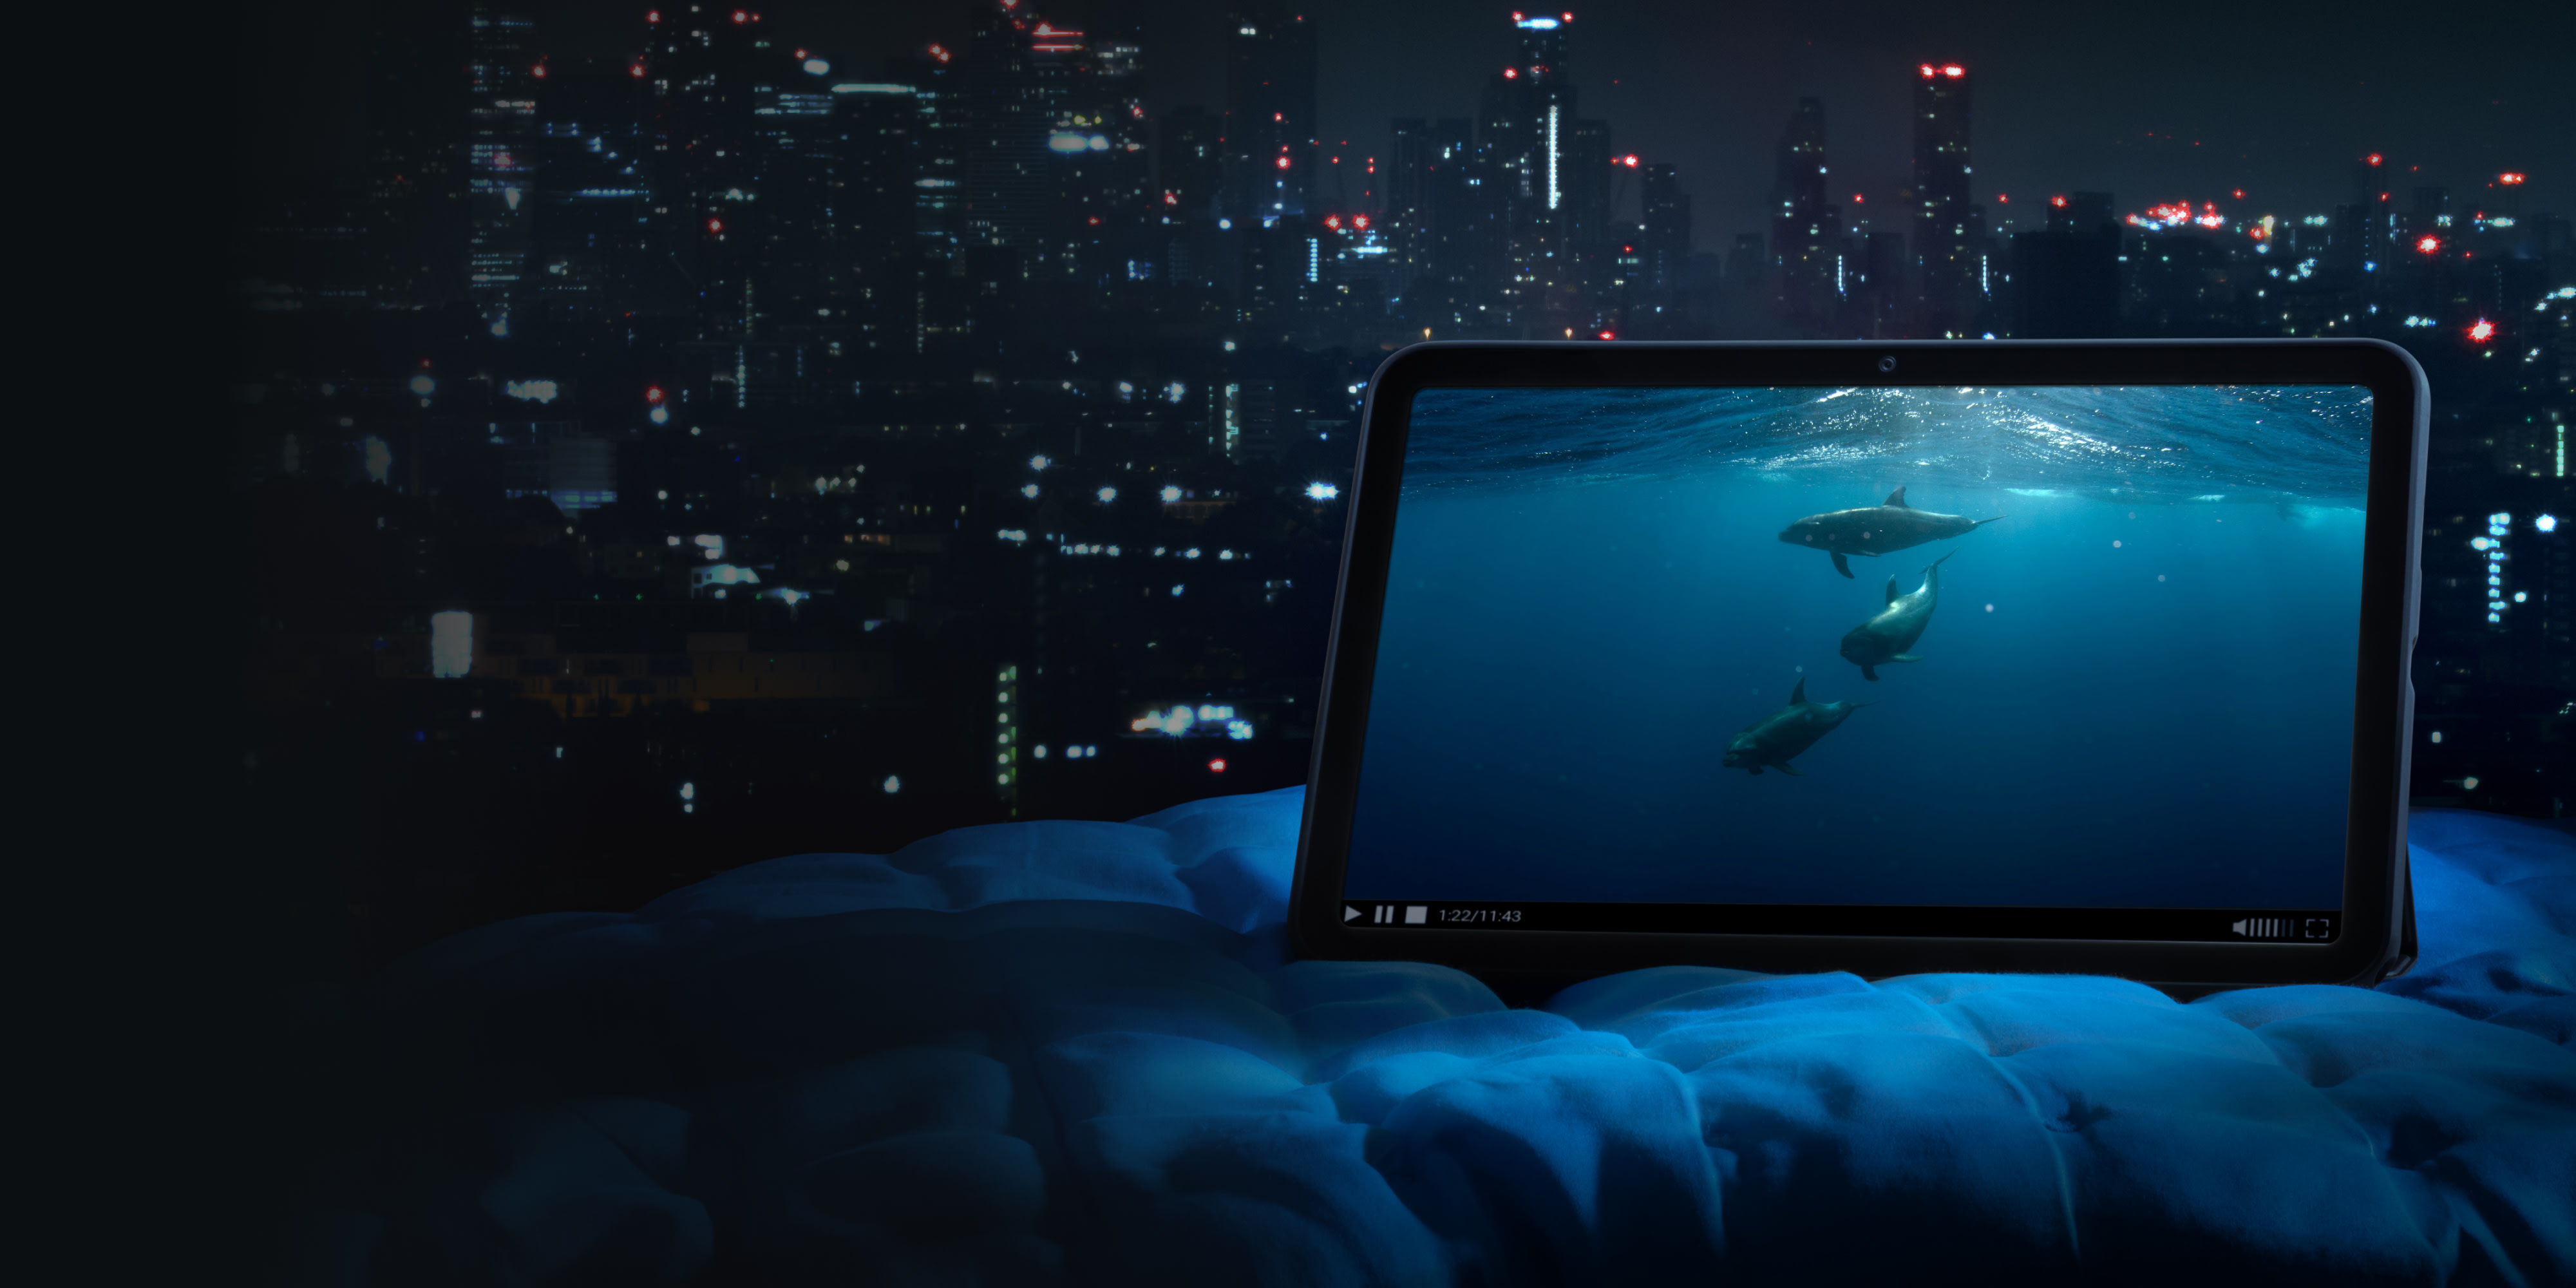 An image of dolphins displayed on the 2K display of the Nokia T20 tablet.